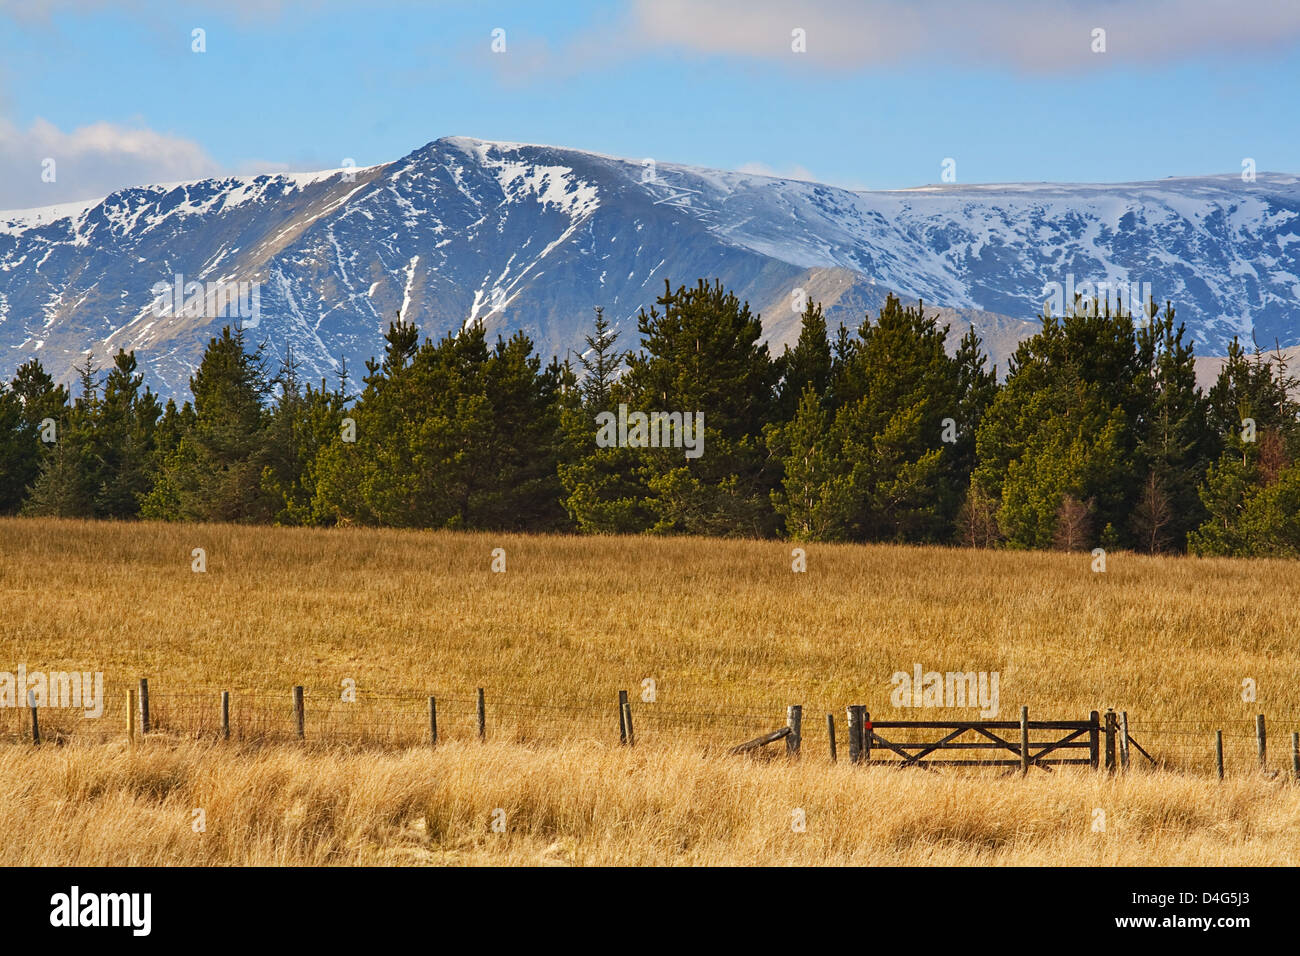 snow capped rocky mountains set behind fur trees with field or prairie in front - Stock Image